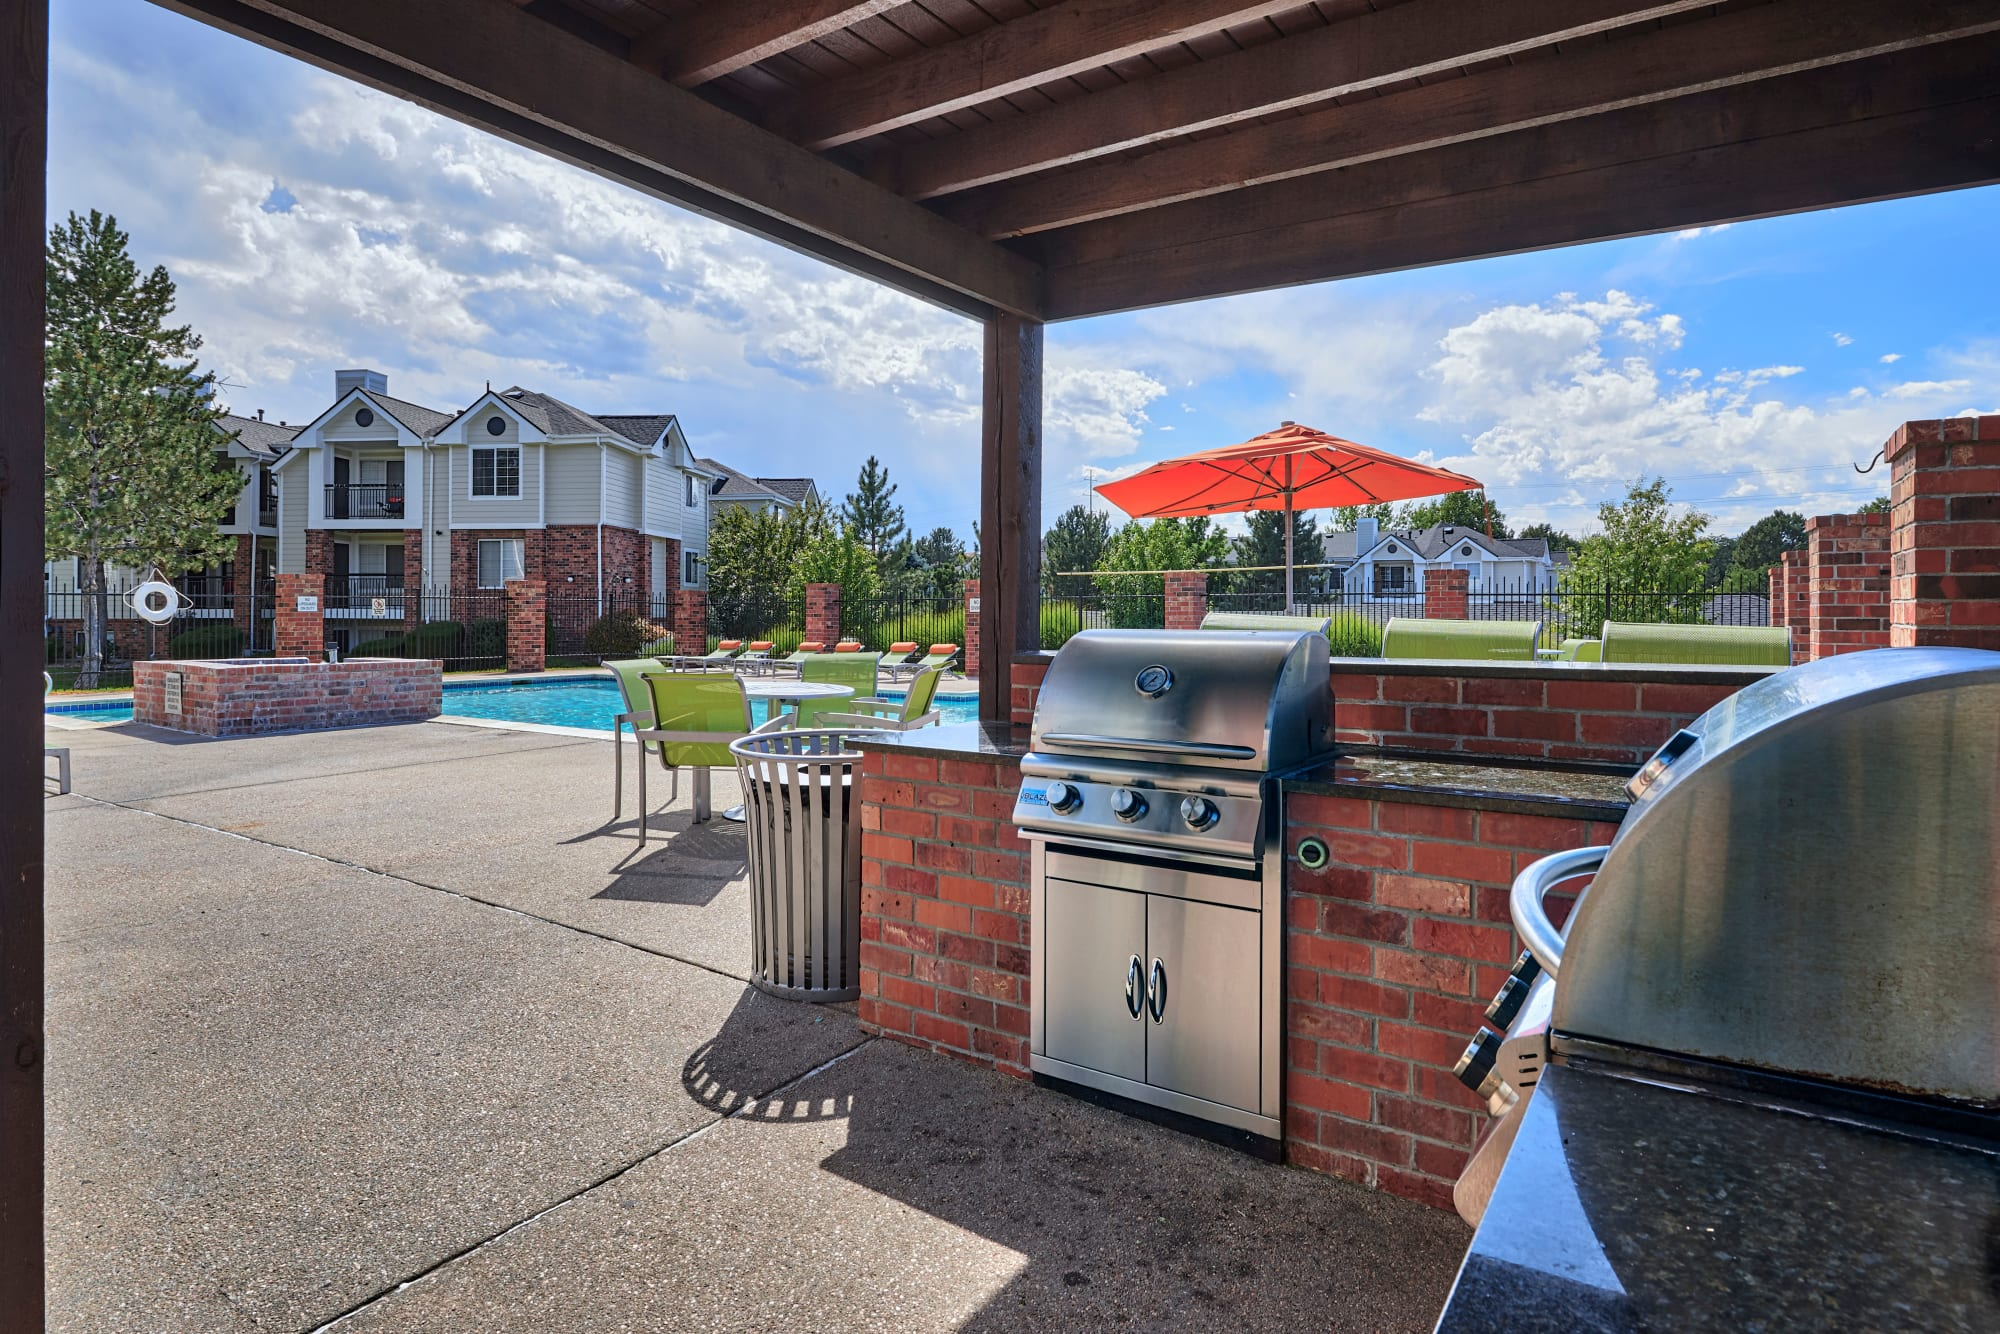 Covered BBQ area Poolside by Villas at Homestead Apartments's pool